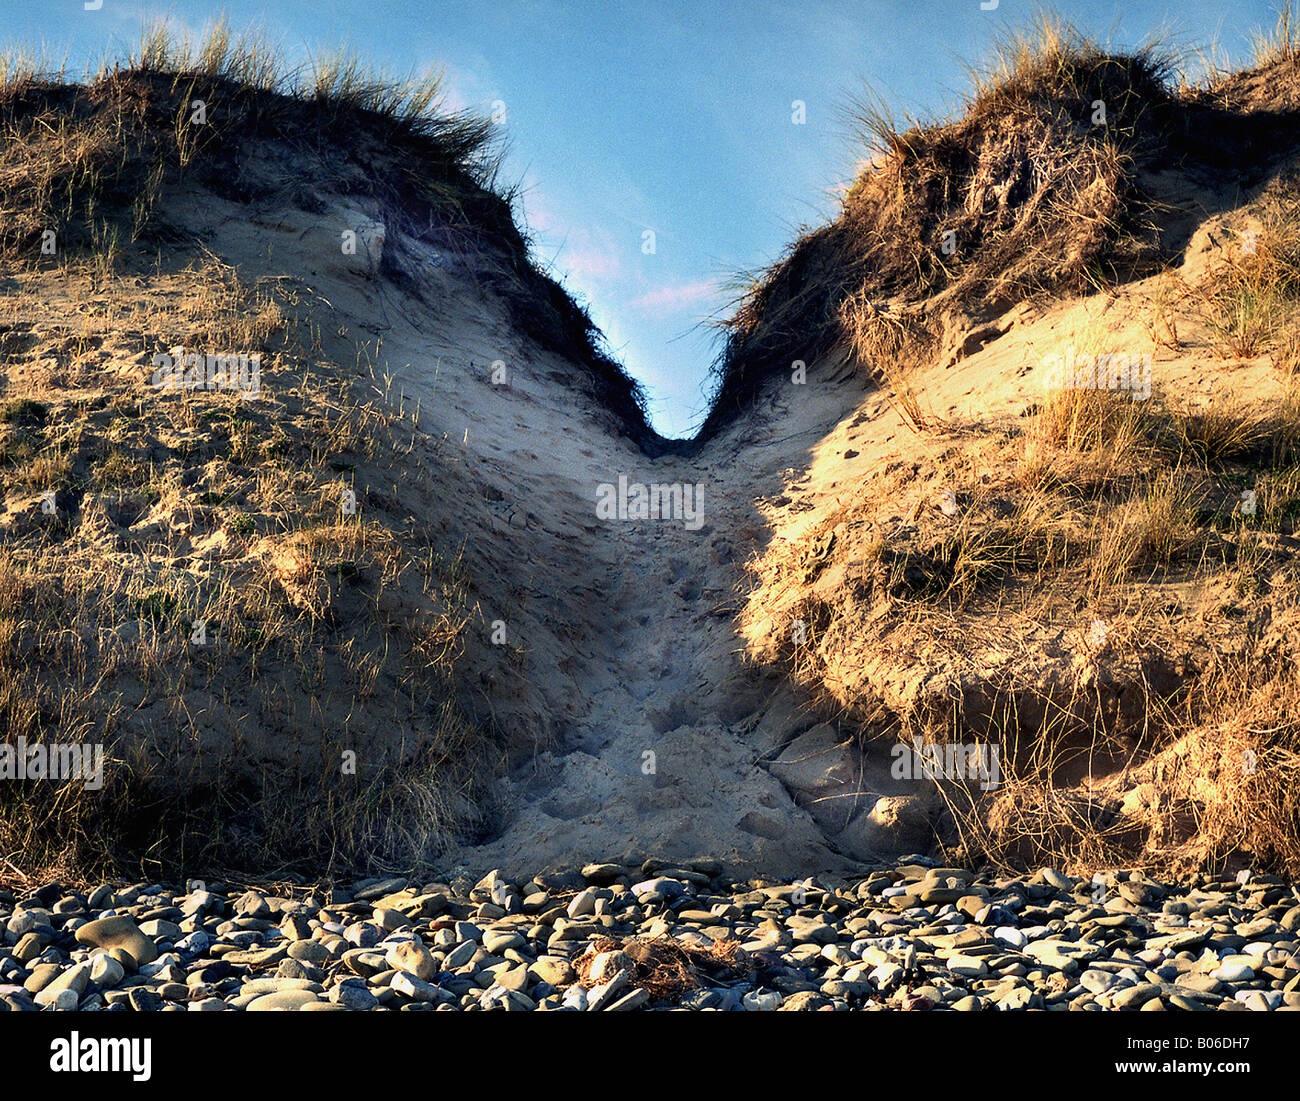 This is a full colour image of the sand dunes at whiteford point on the north west end of the gower peninsula. - Stock Image